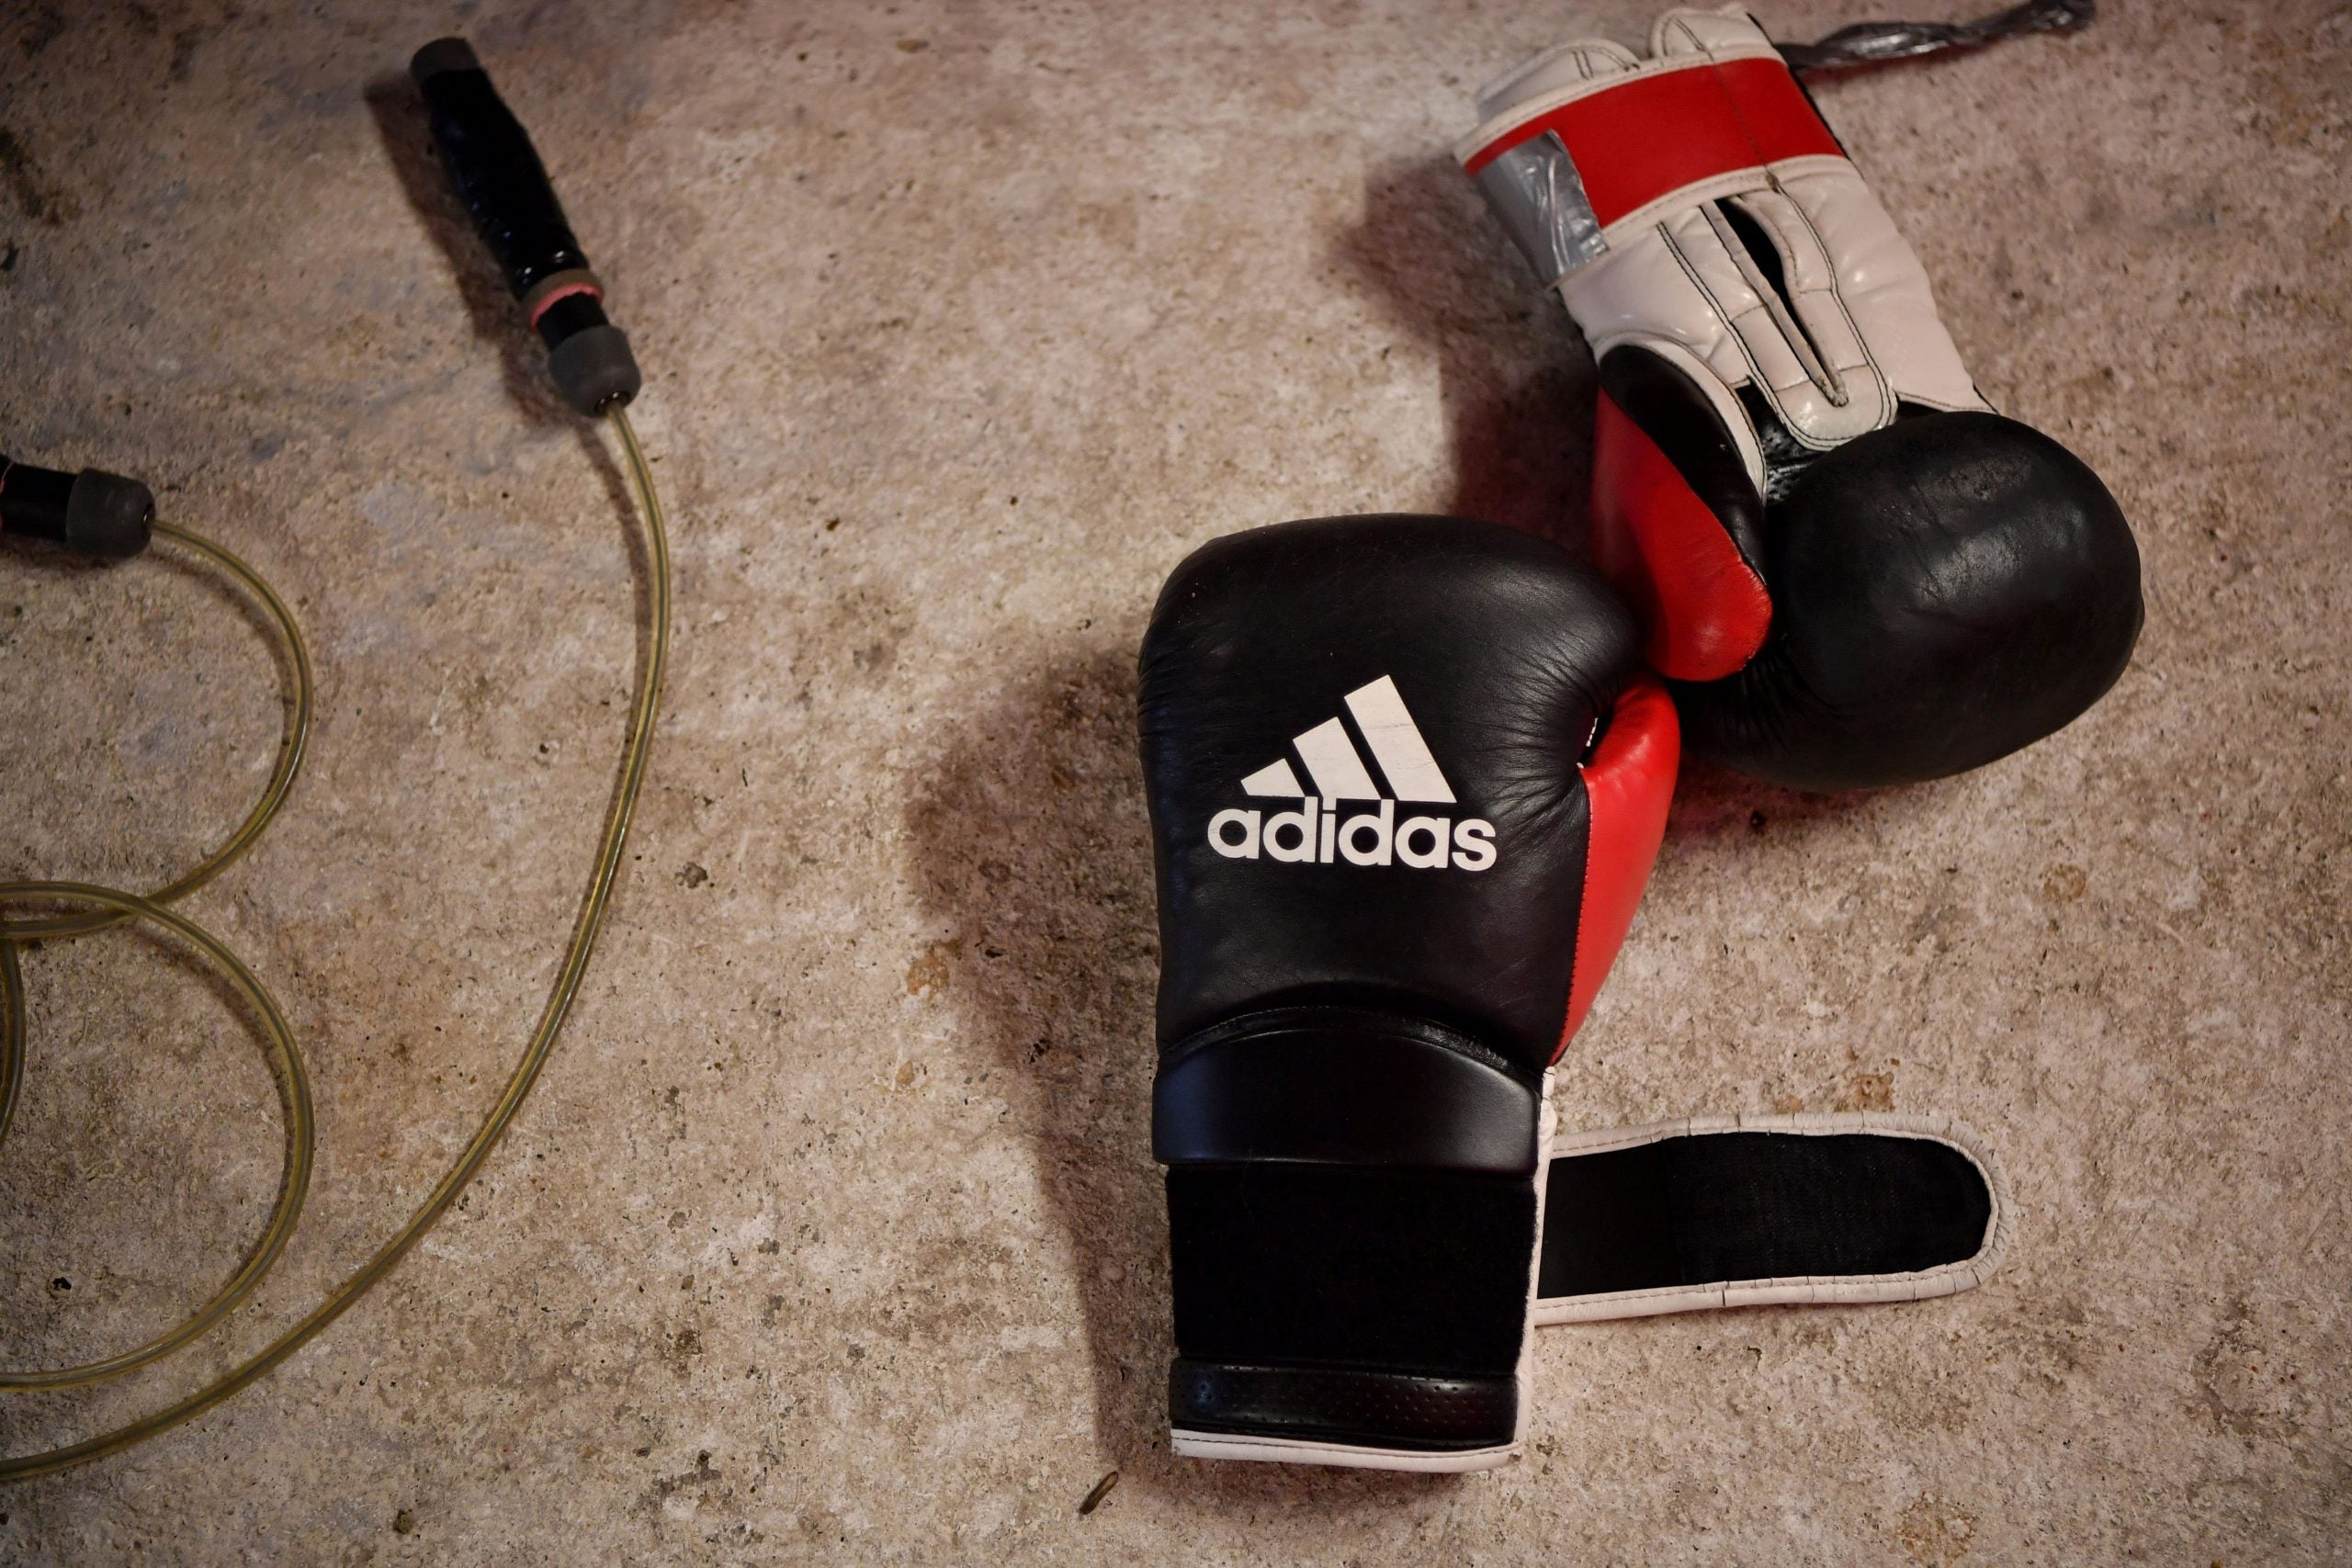 My friend Ben suggested I take up boxing. With my large and fragile nose, I replied?